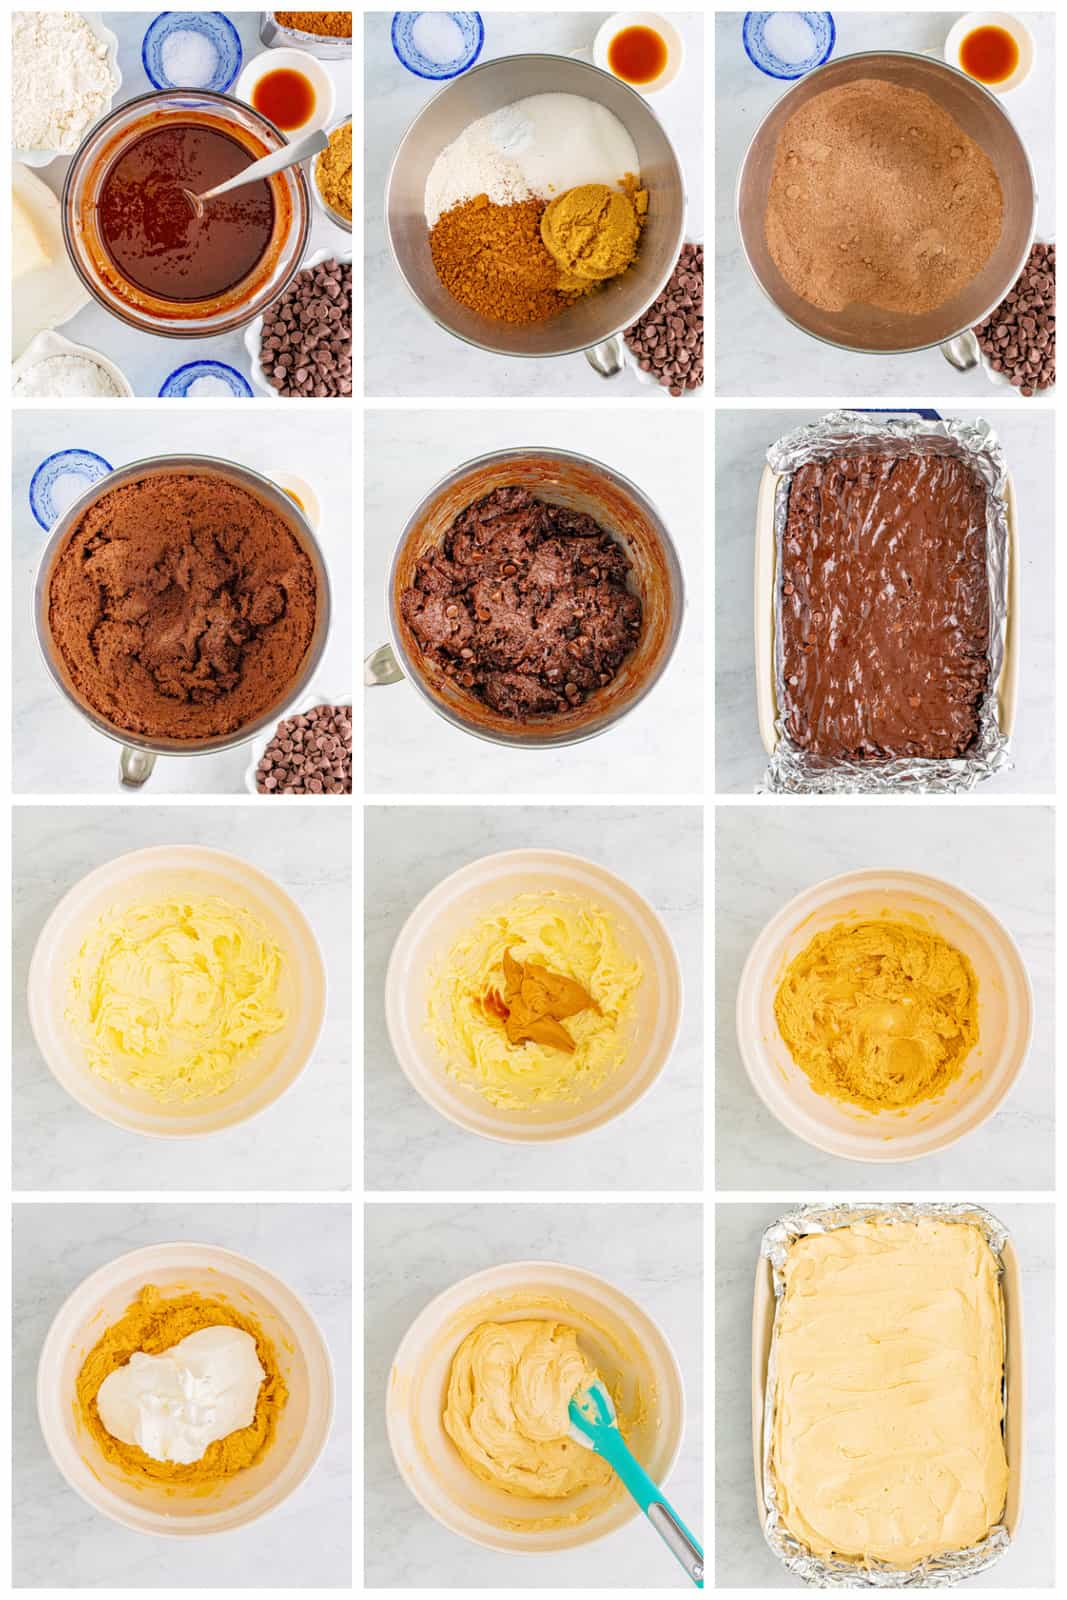 Step by step photos on how to make Silky Peanut Butter Brownies.